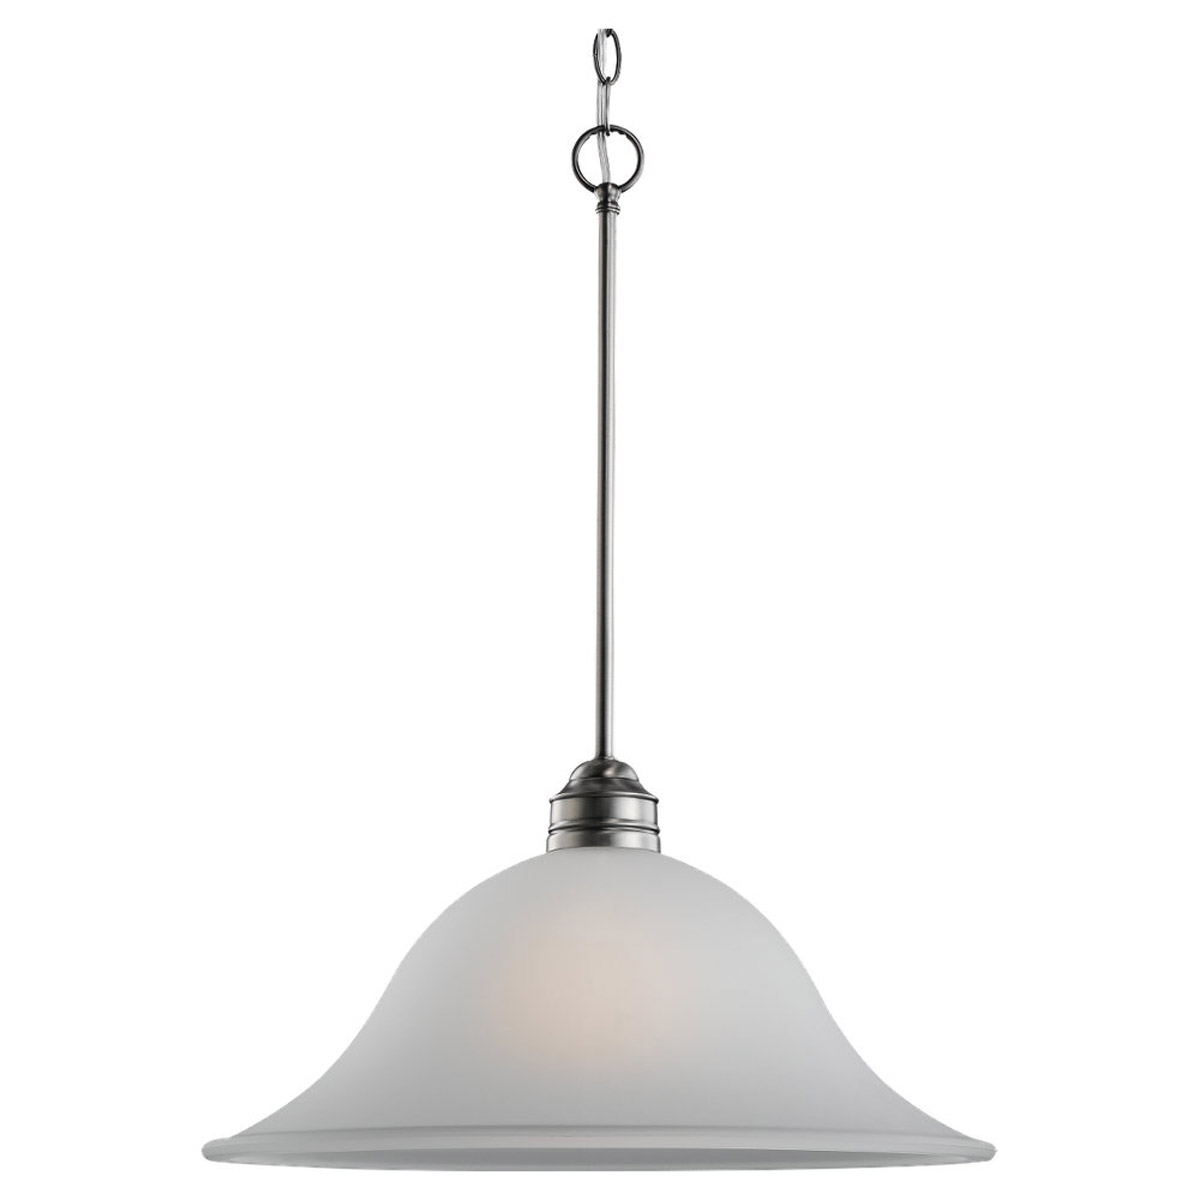 Sea Gull Lighting Gladstone 1 Light Pendant in Antique Brushed Nickel 65850-965